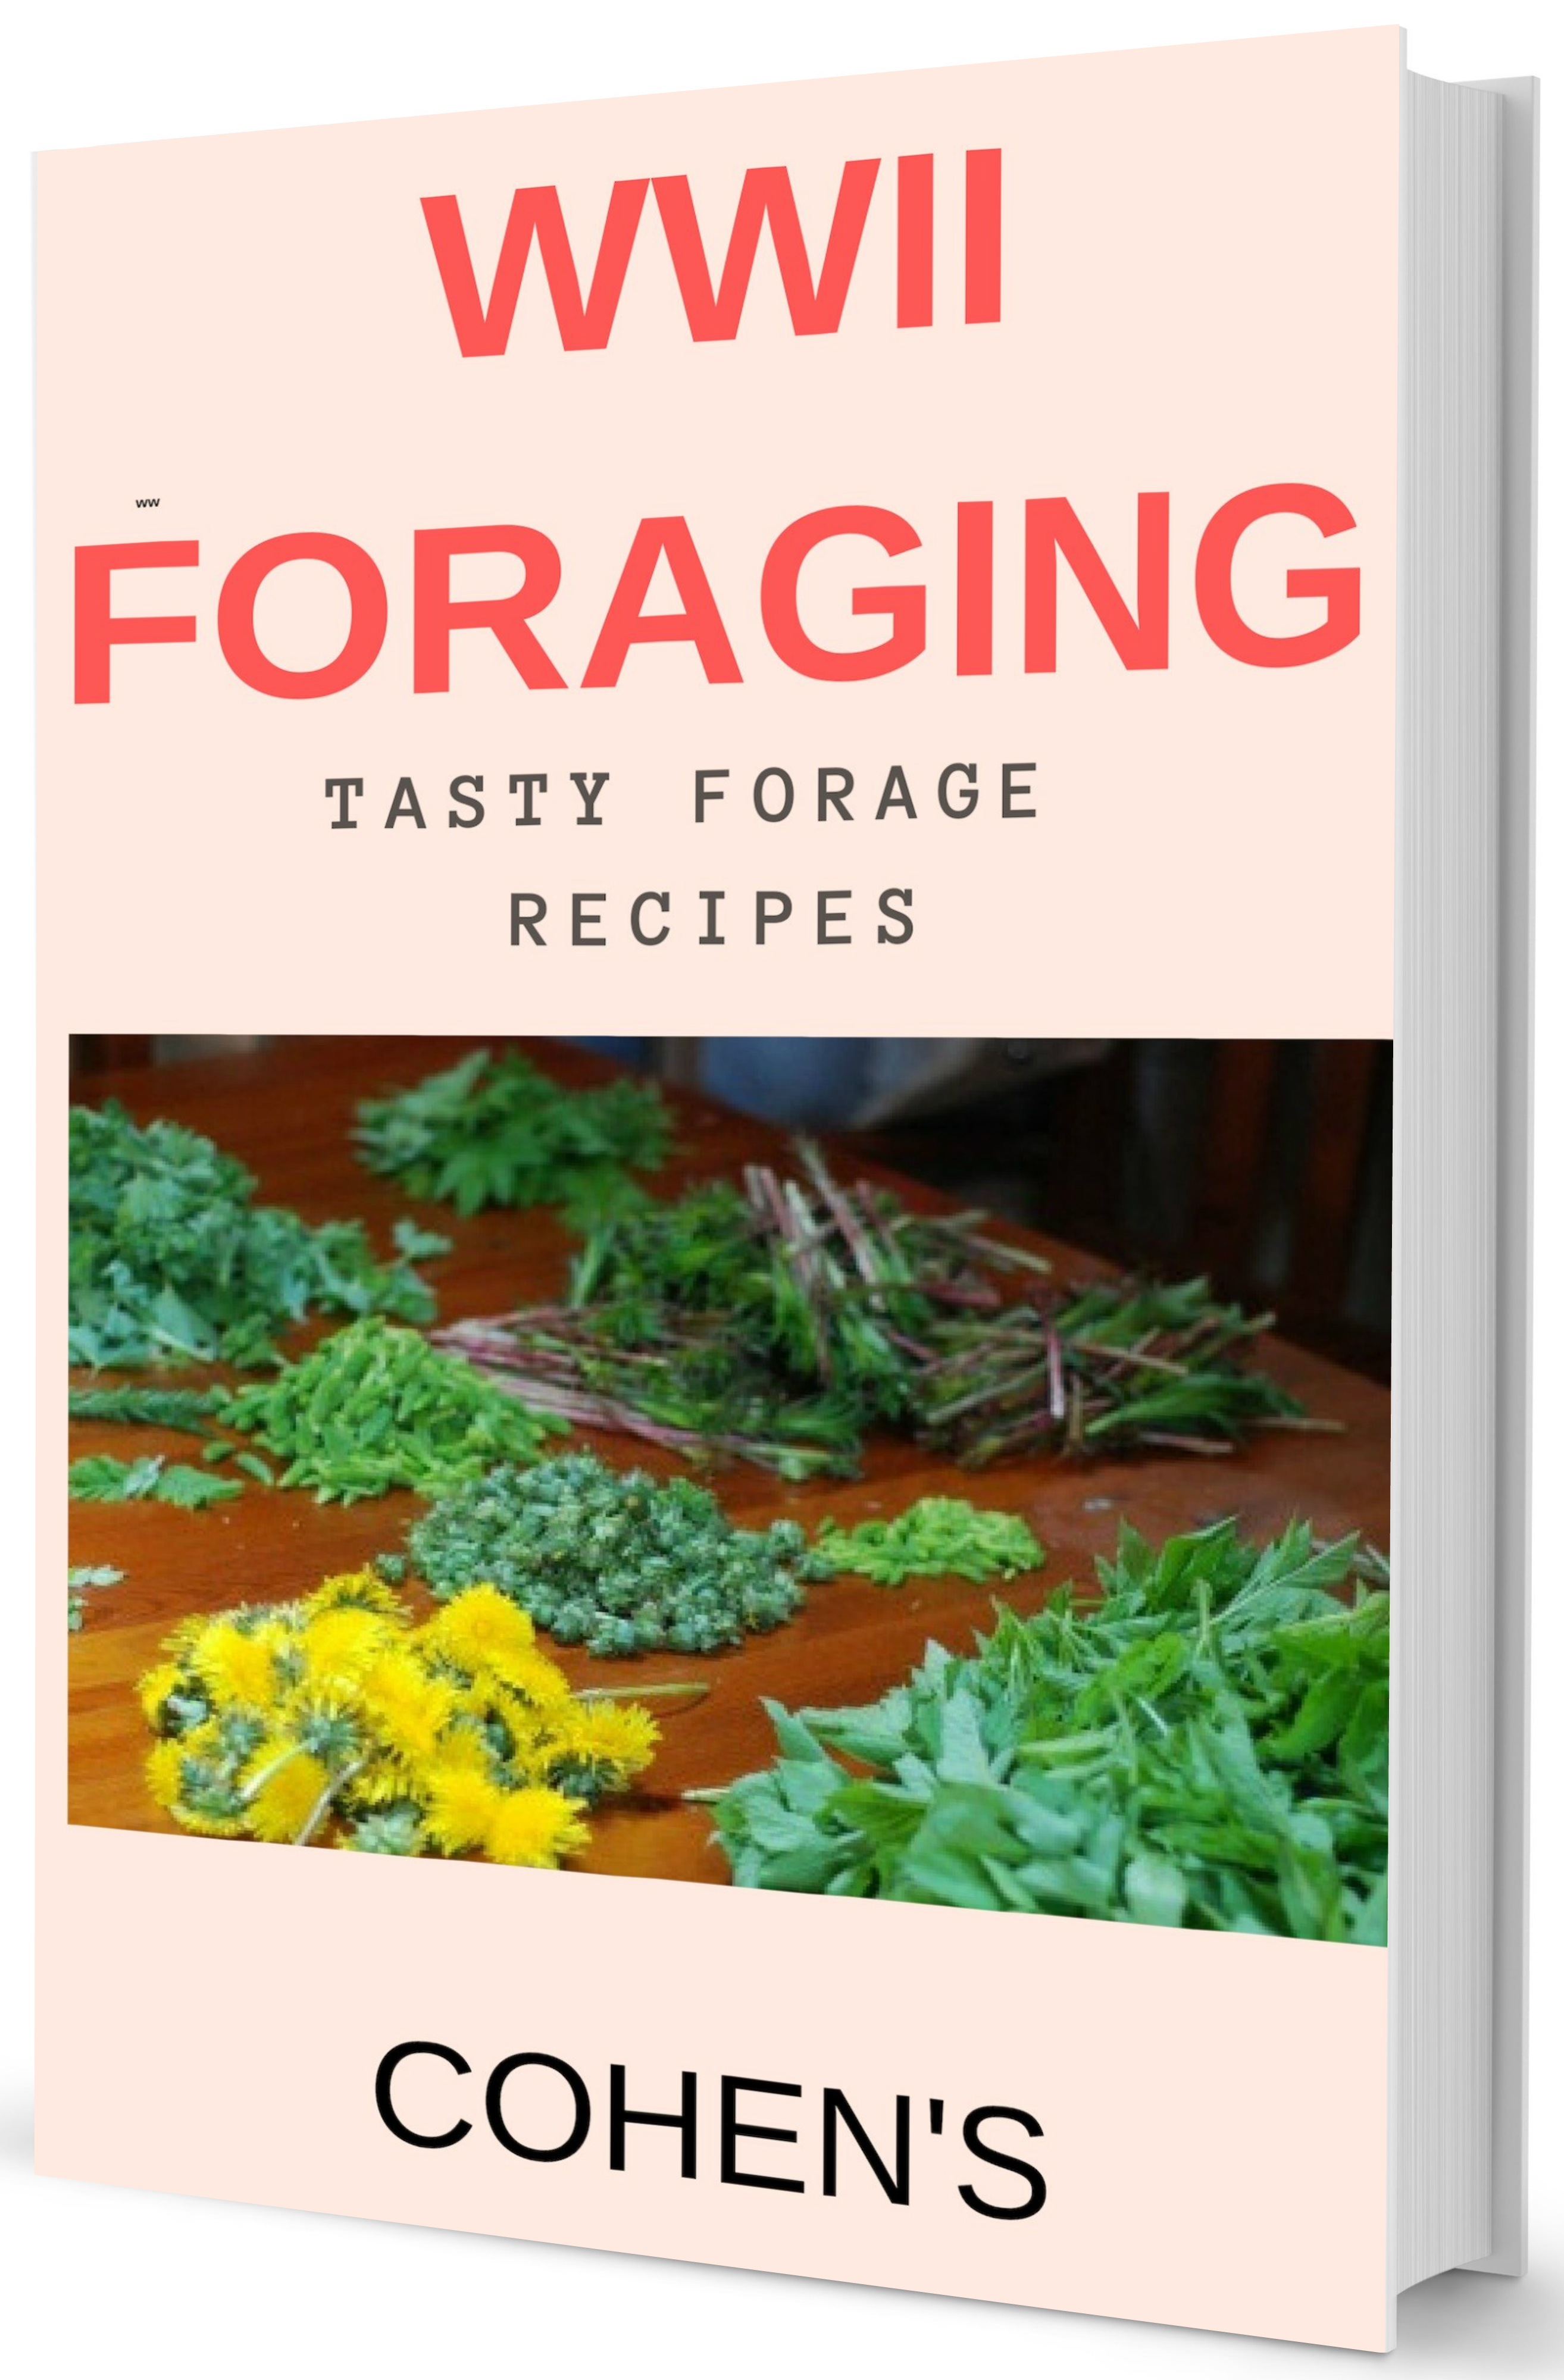 WWII foraging cook book cover mock up